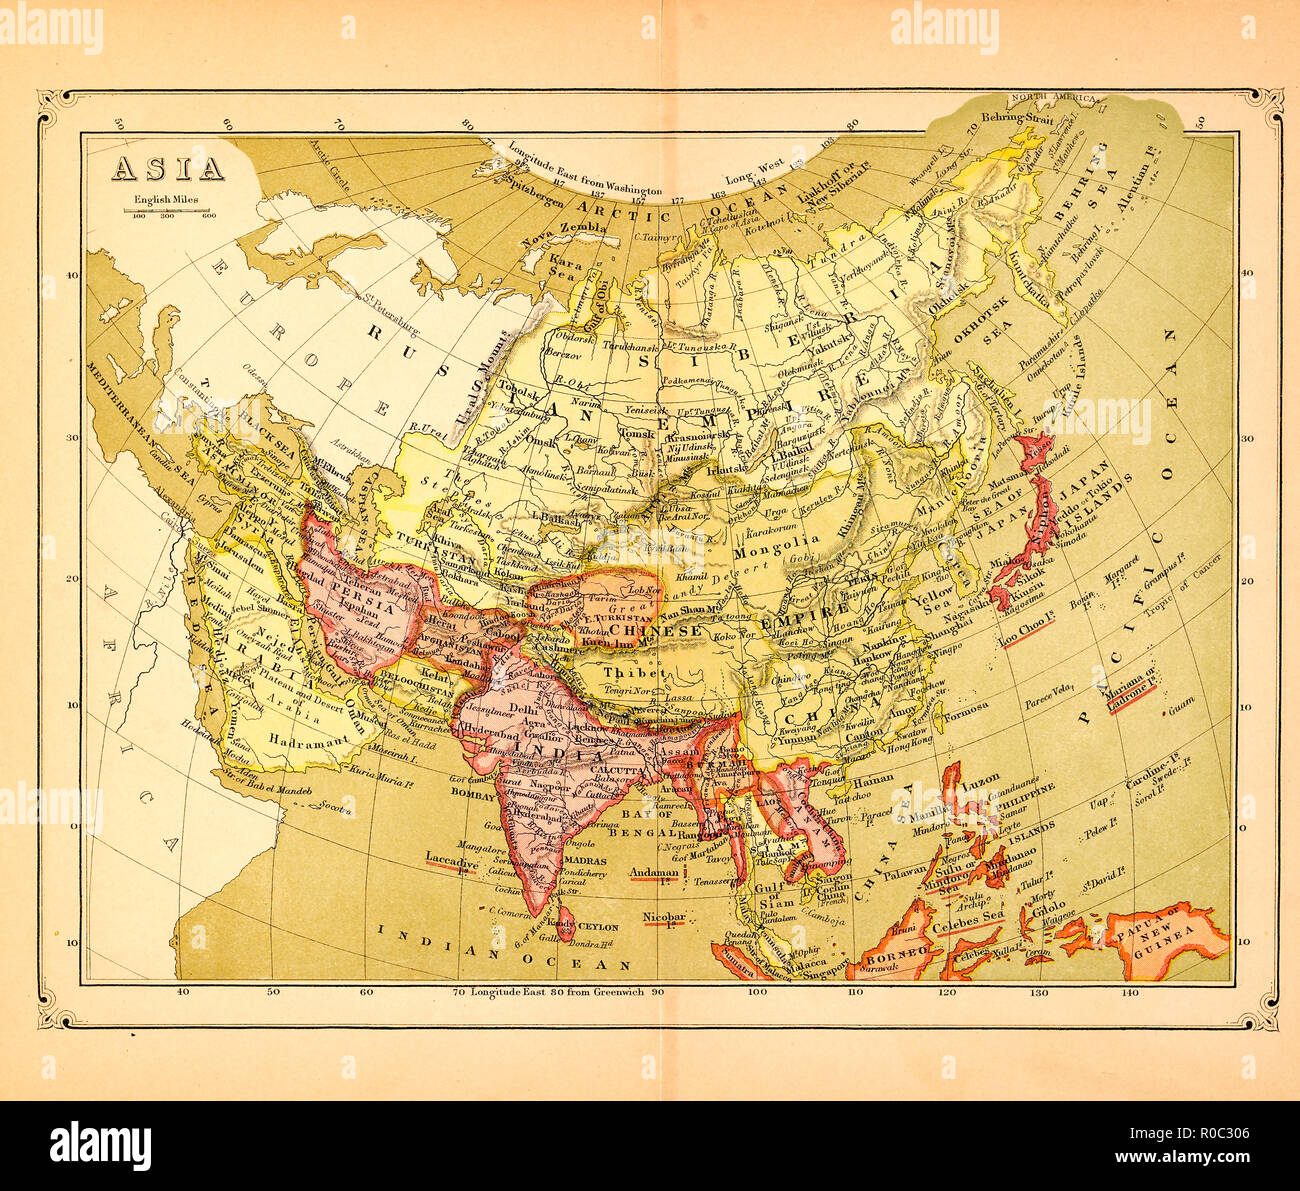 Map Of Asia And Pacific.Historical Asia Pacific Map Stock Photos Historical Asia Pacific